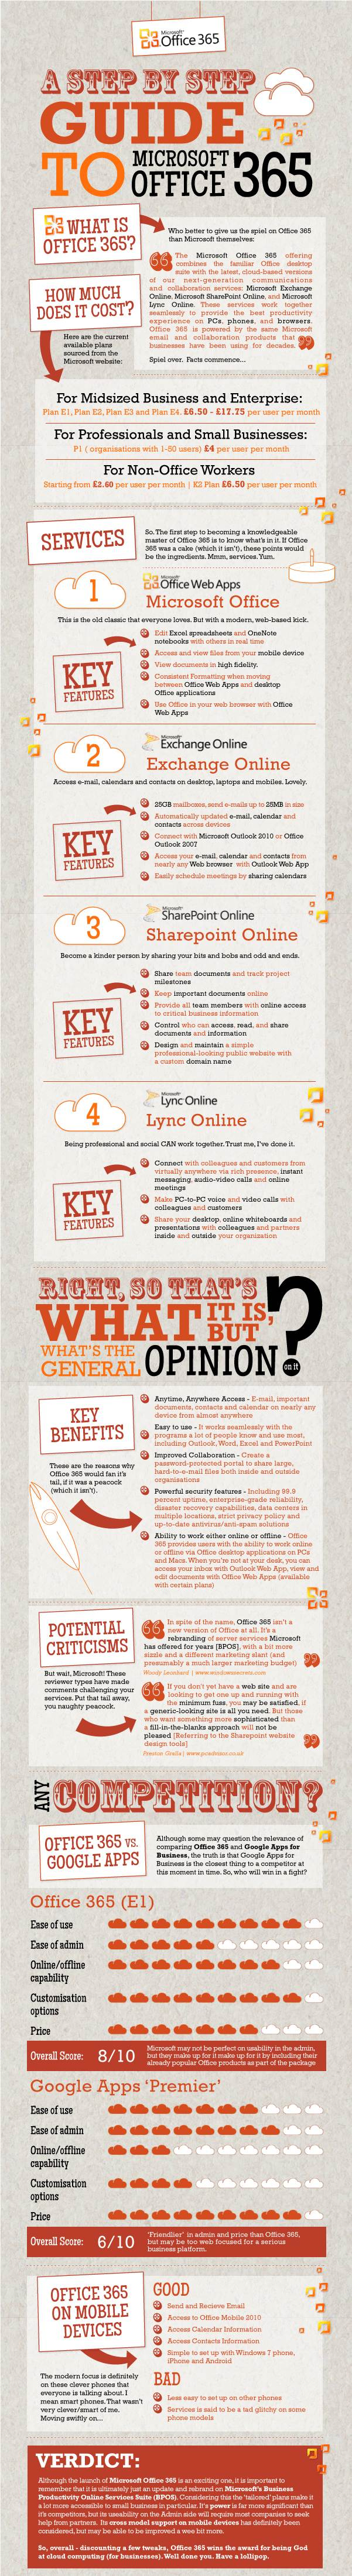 office365infographic